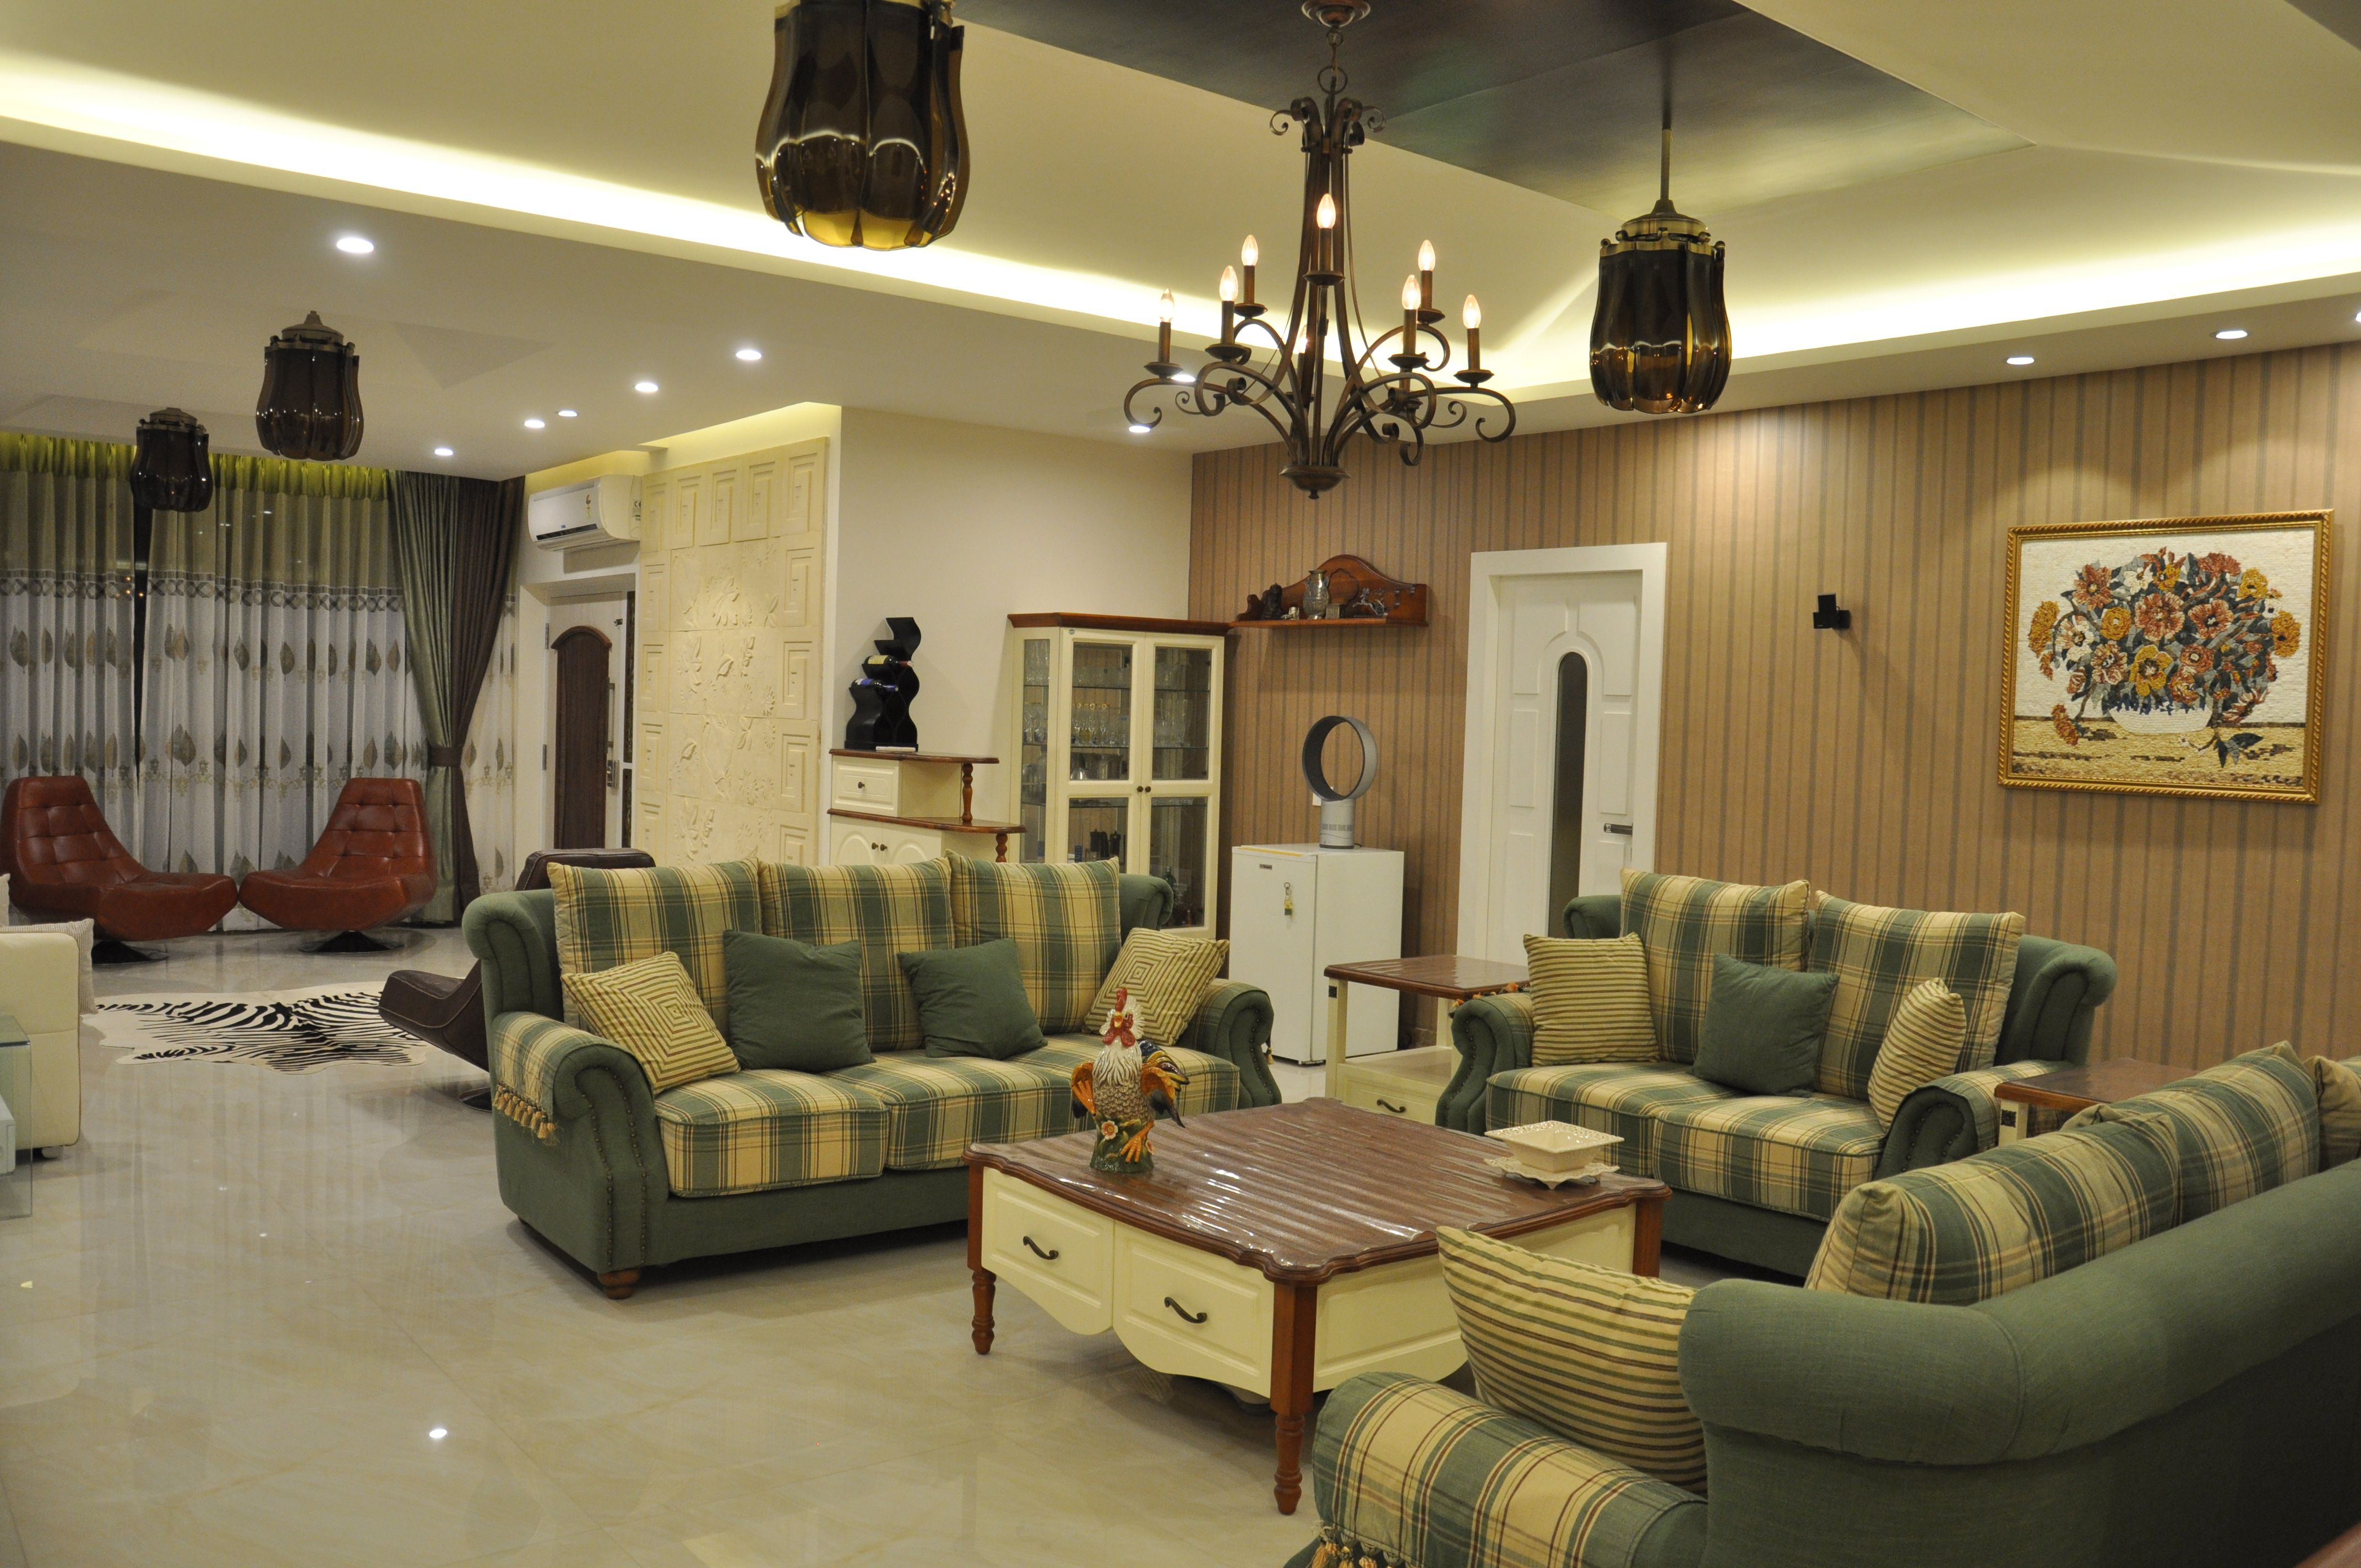 Interior Design Ideas In Hyderabad